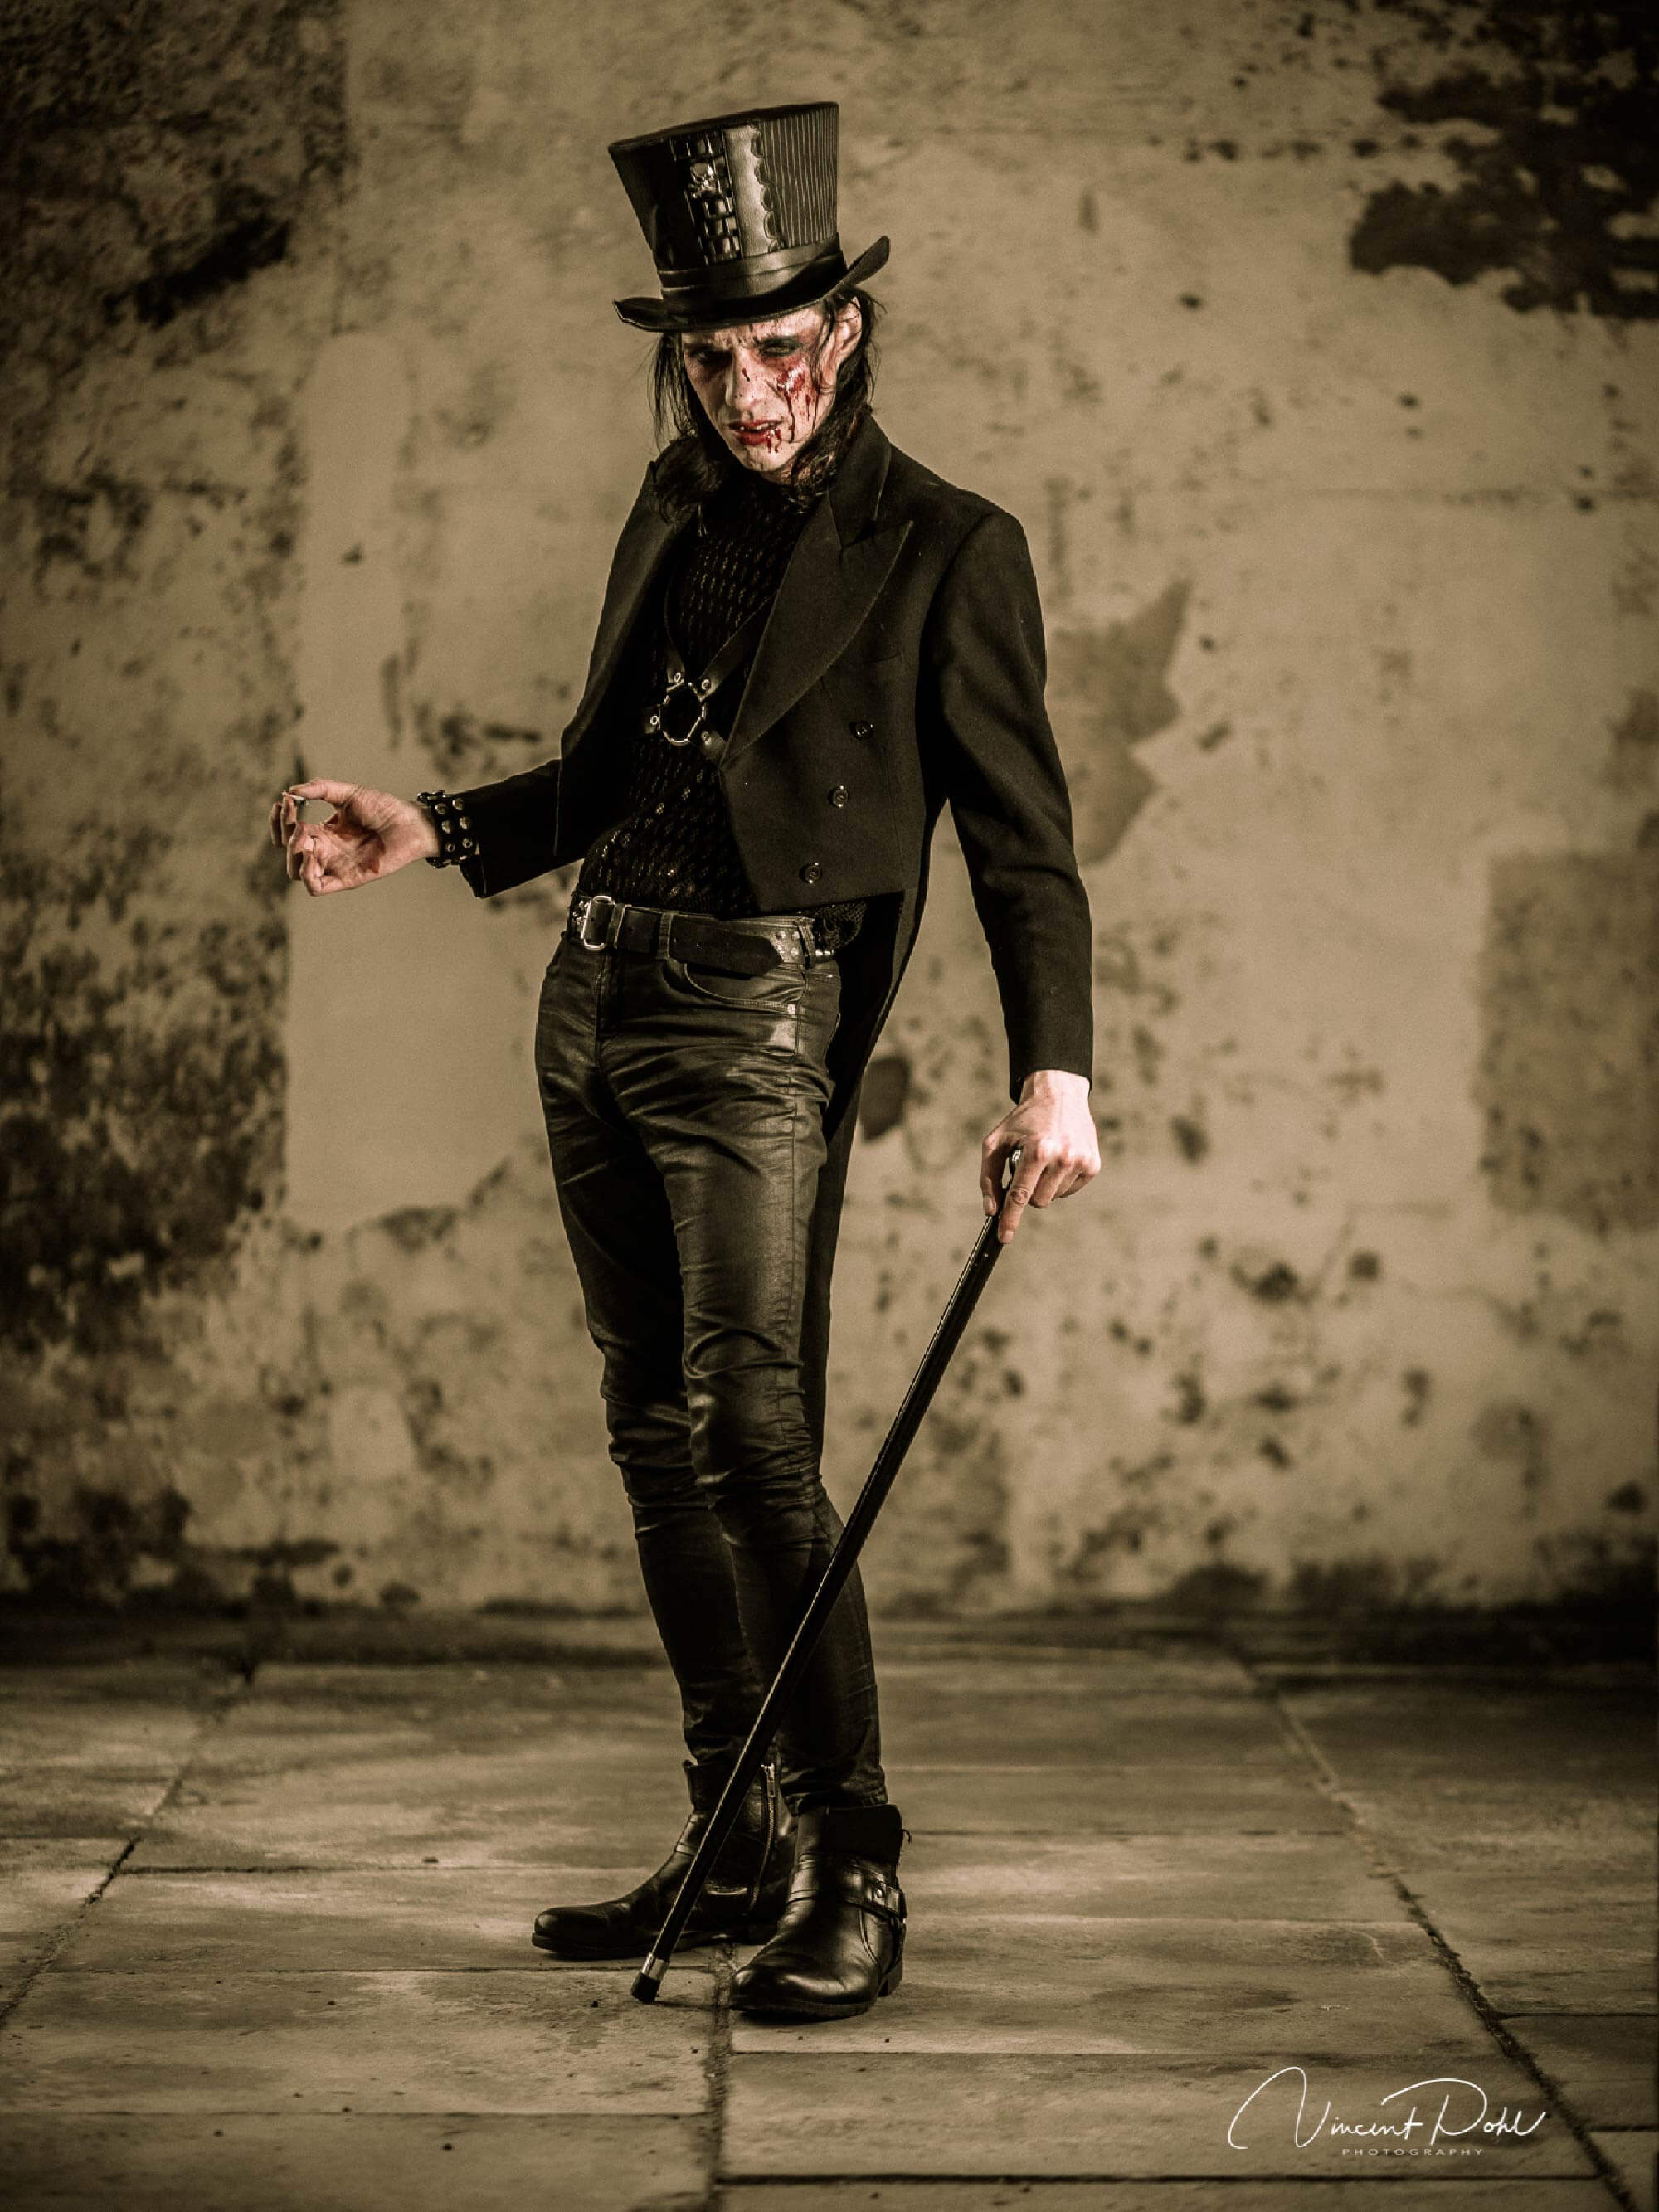 Fantasy makeup. A man with blood on his face, a top hat and a cane poses for a photo.